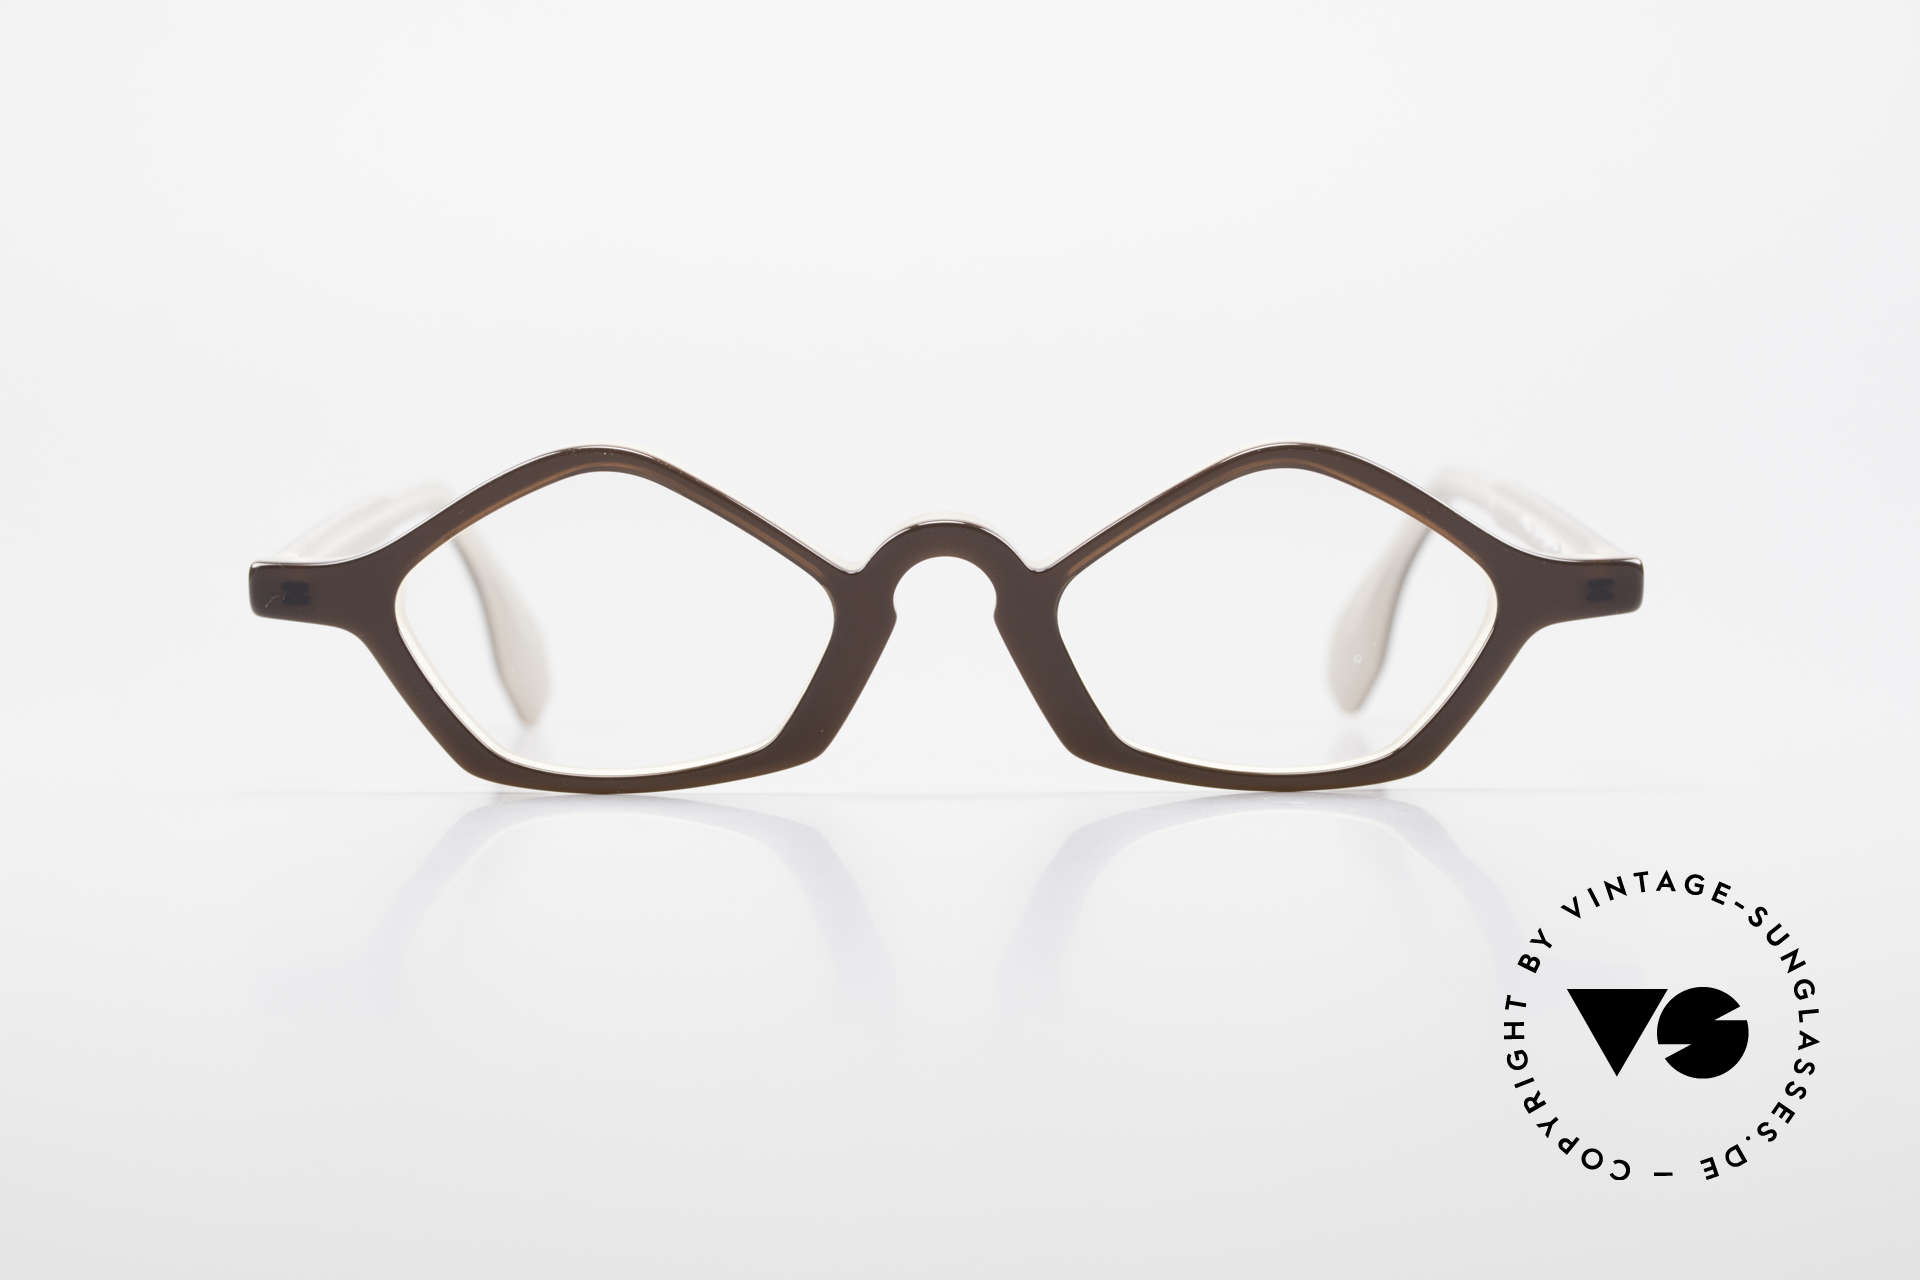 Theo Belgium Polygone Geometrical Plastic Eyeglasses, founded in 1989 as 'opposite pole' to the 'mainstream', Made for Men and Women